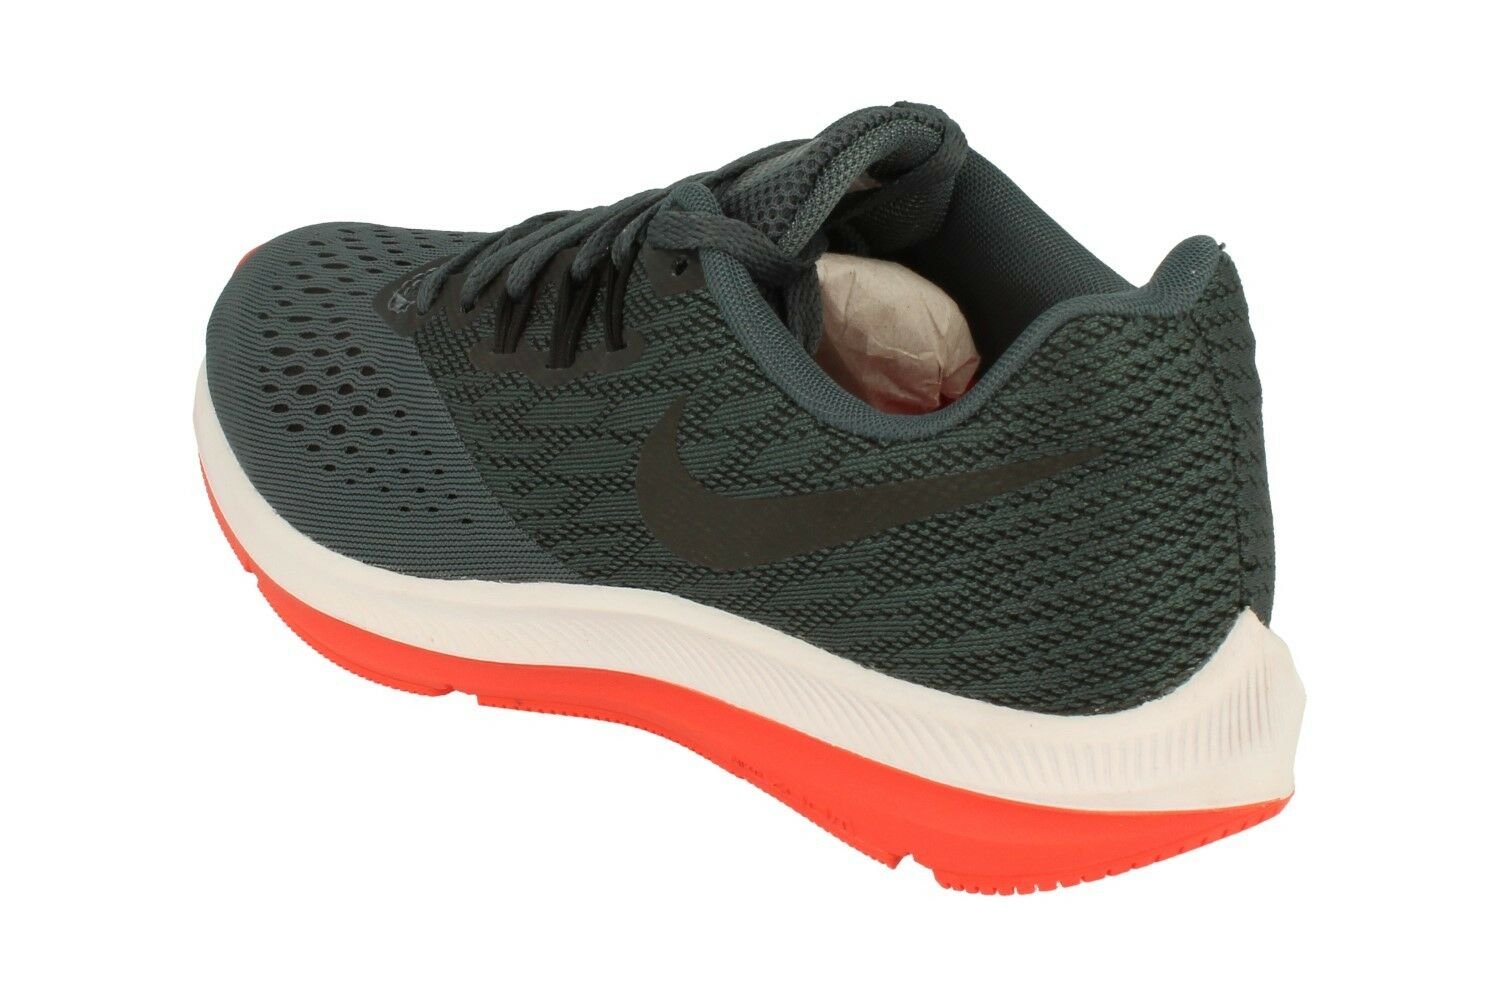 Nike Womens Zoom Zoom Zoom Winflo 4 Running Trainers 898485 Sneakers Shoes 416 0dcc1b